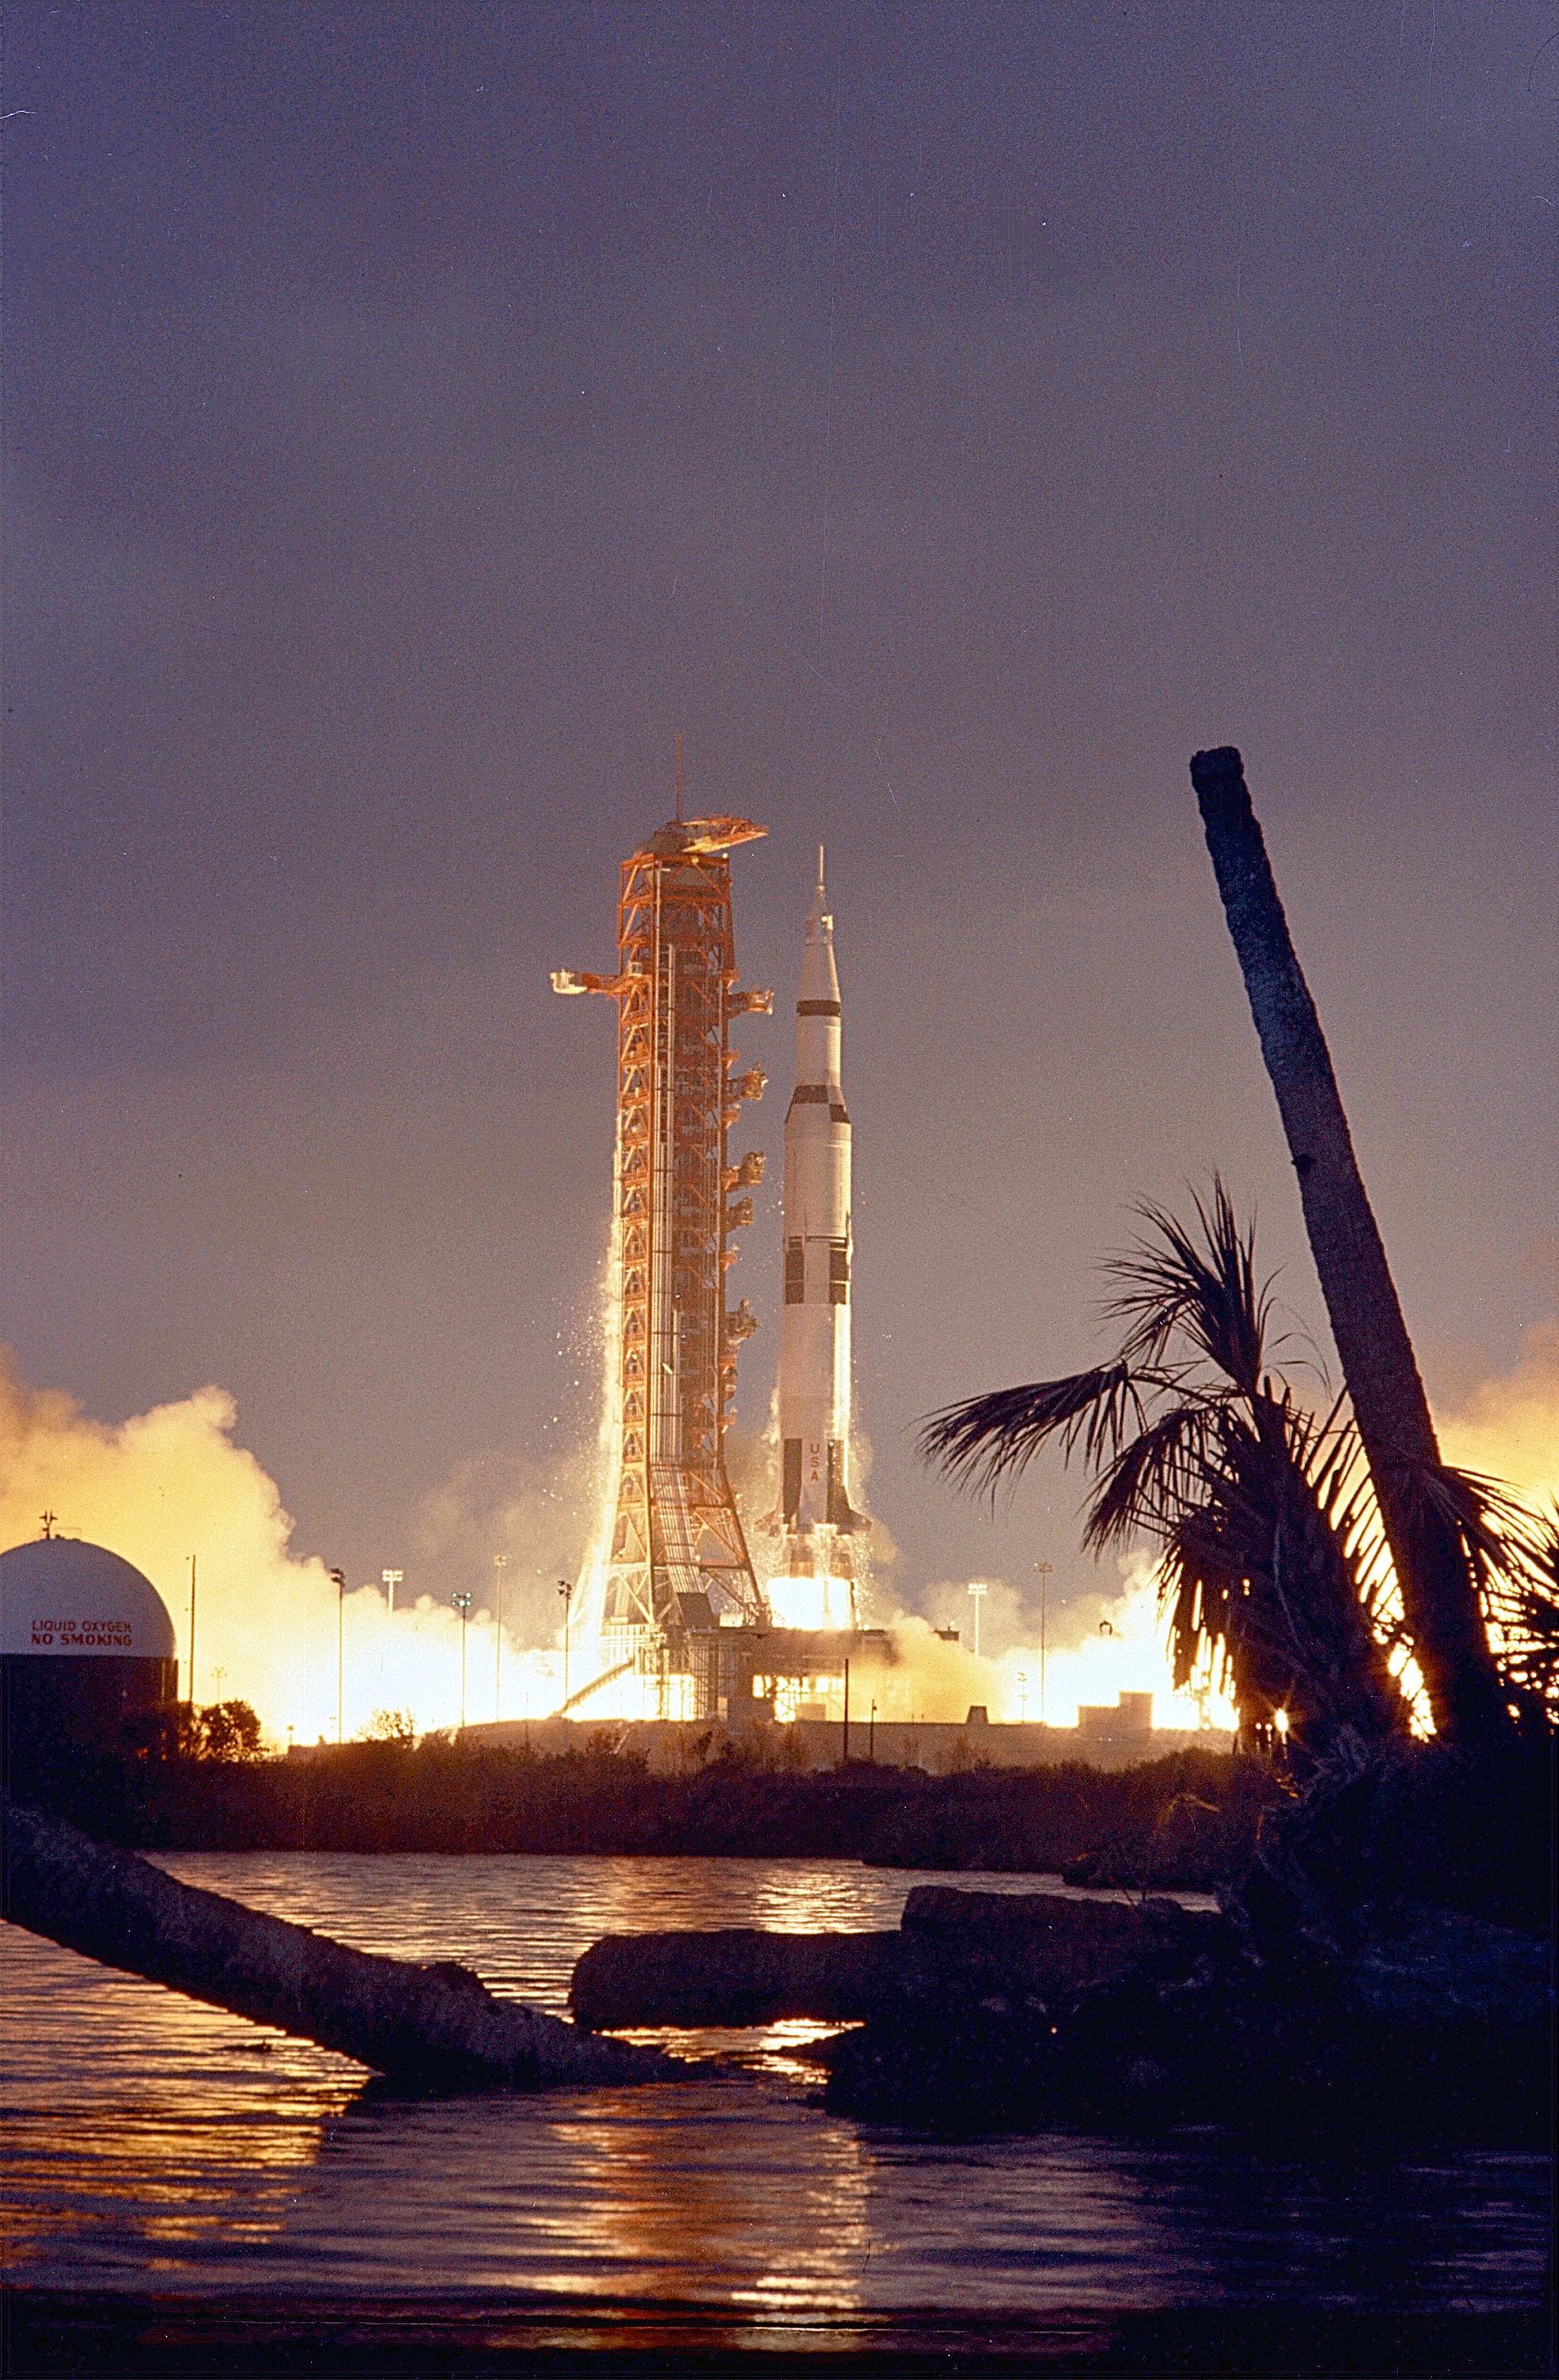 File:Apollo 14 Launch - GPN-2000-000633.jpg - Wikipedia